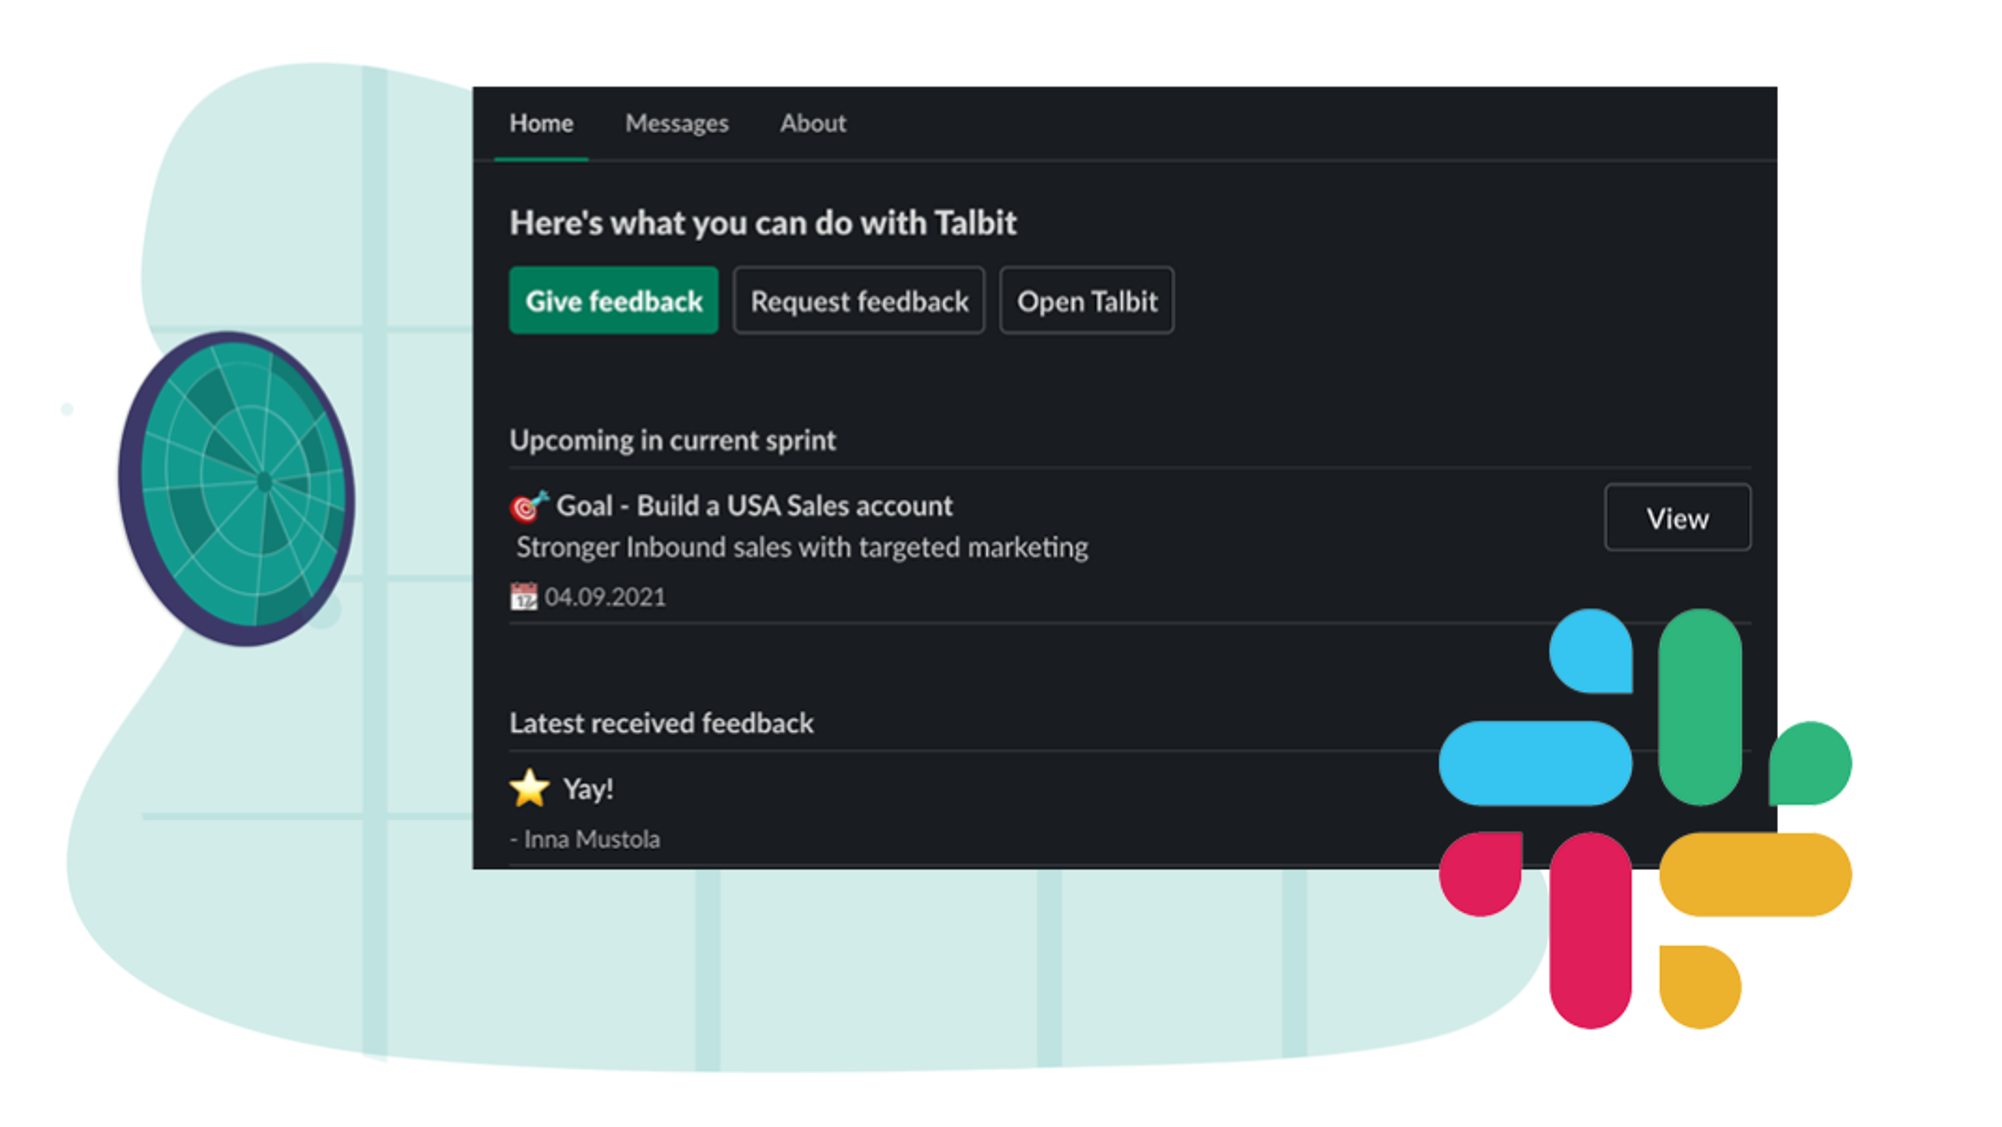 Talbit product update – May 2021